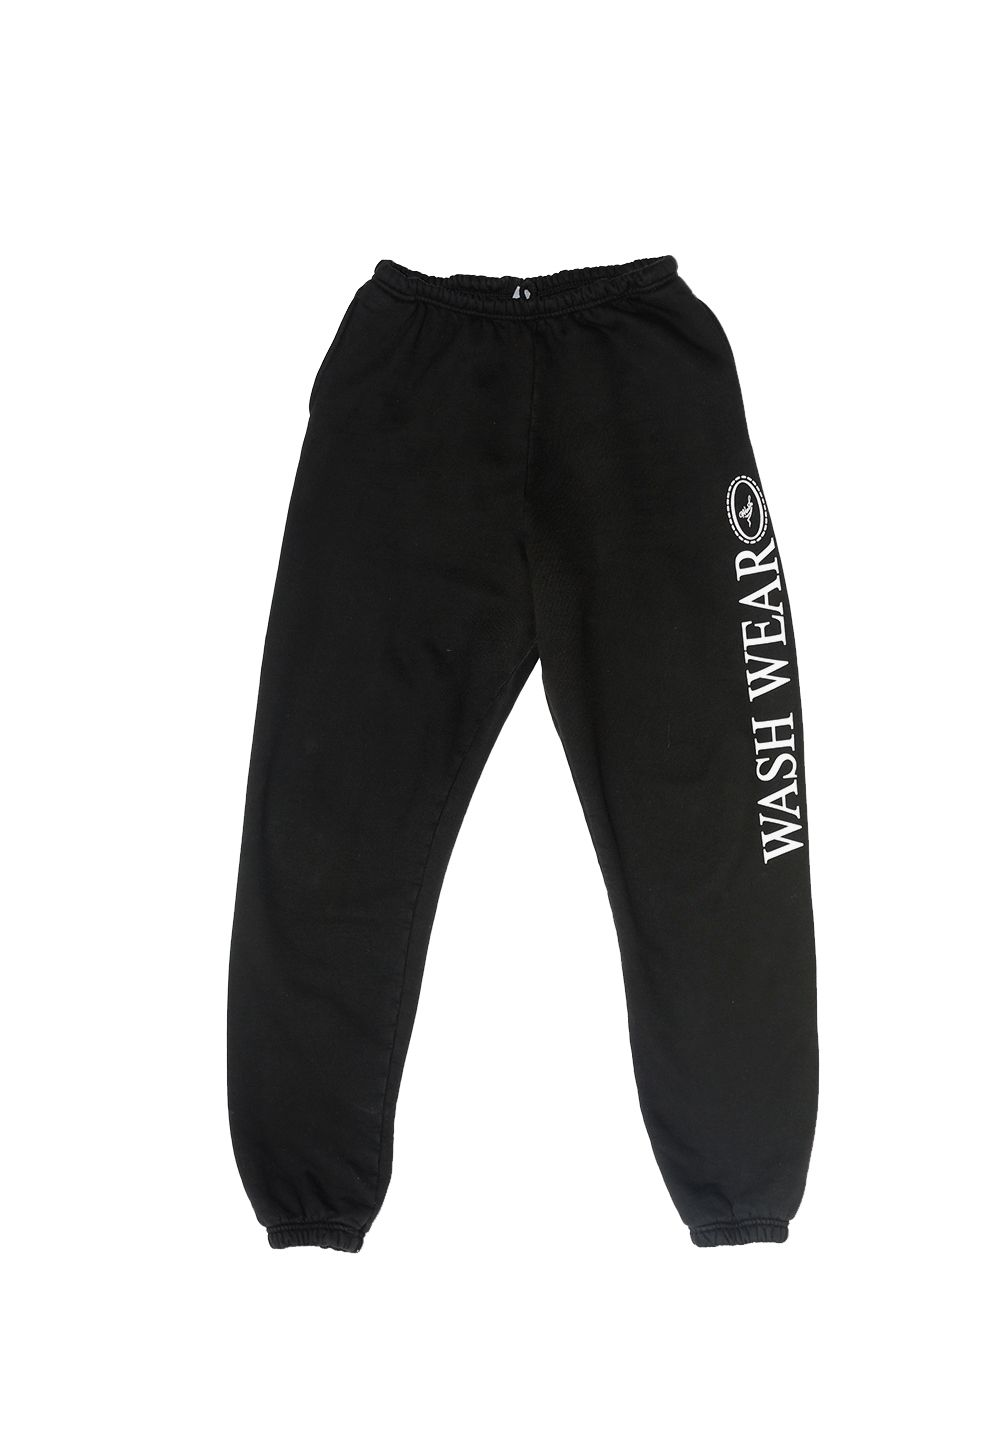 Washwear Sweats_0002_US1A8312